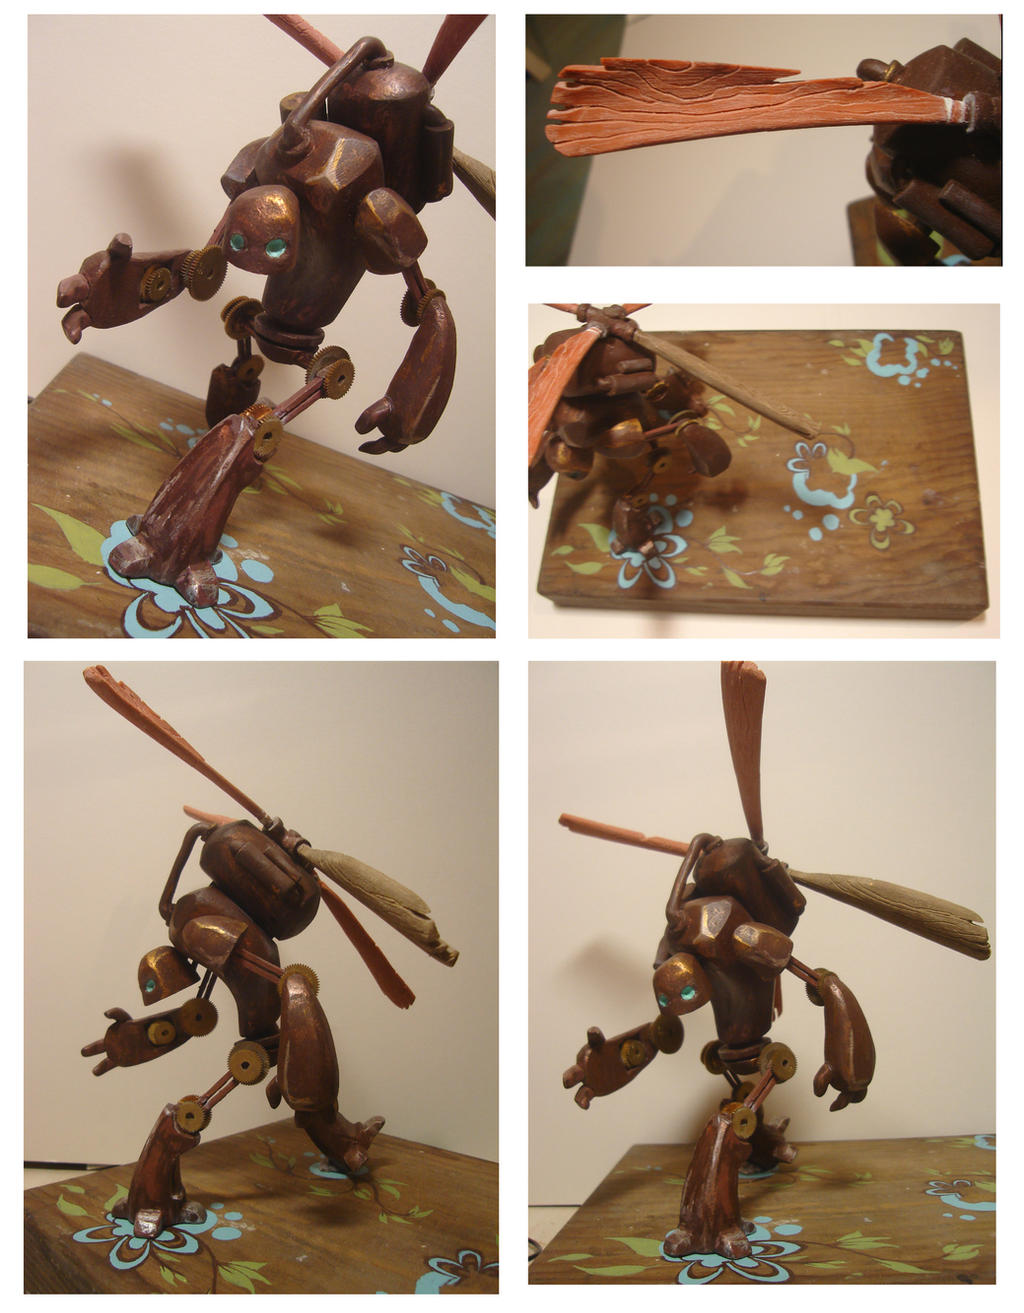 Robot by PhillyBoyWonder